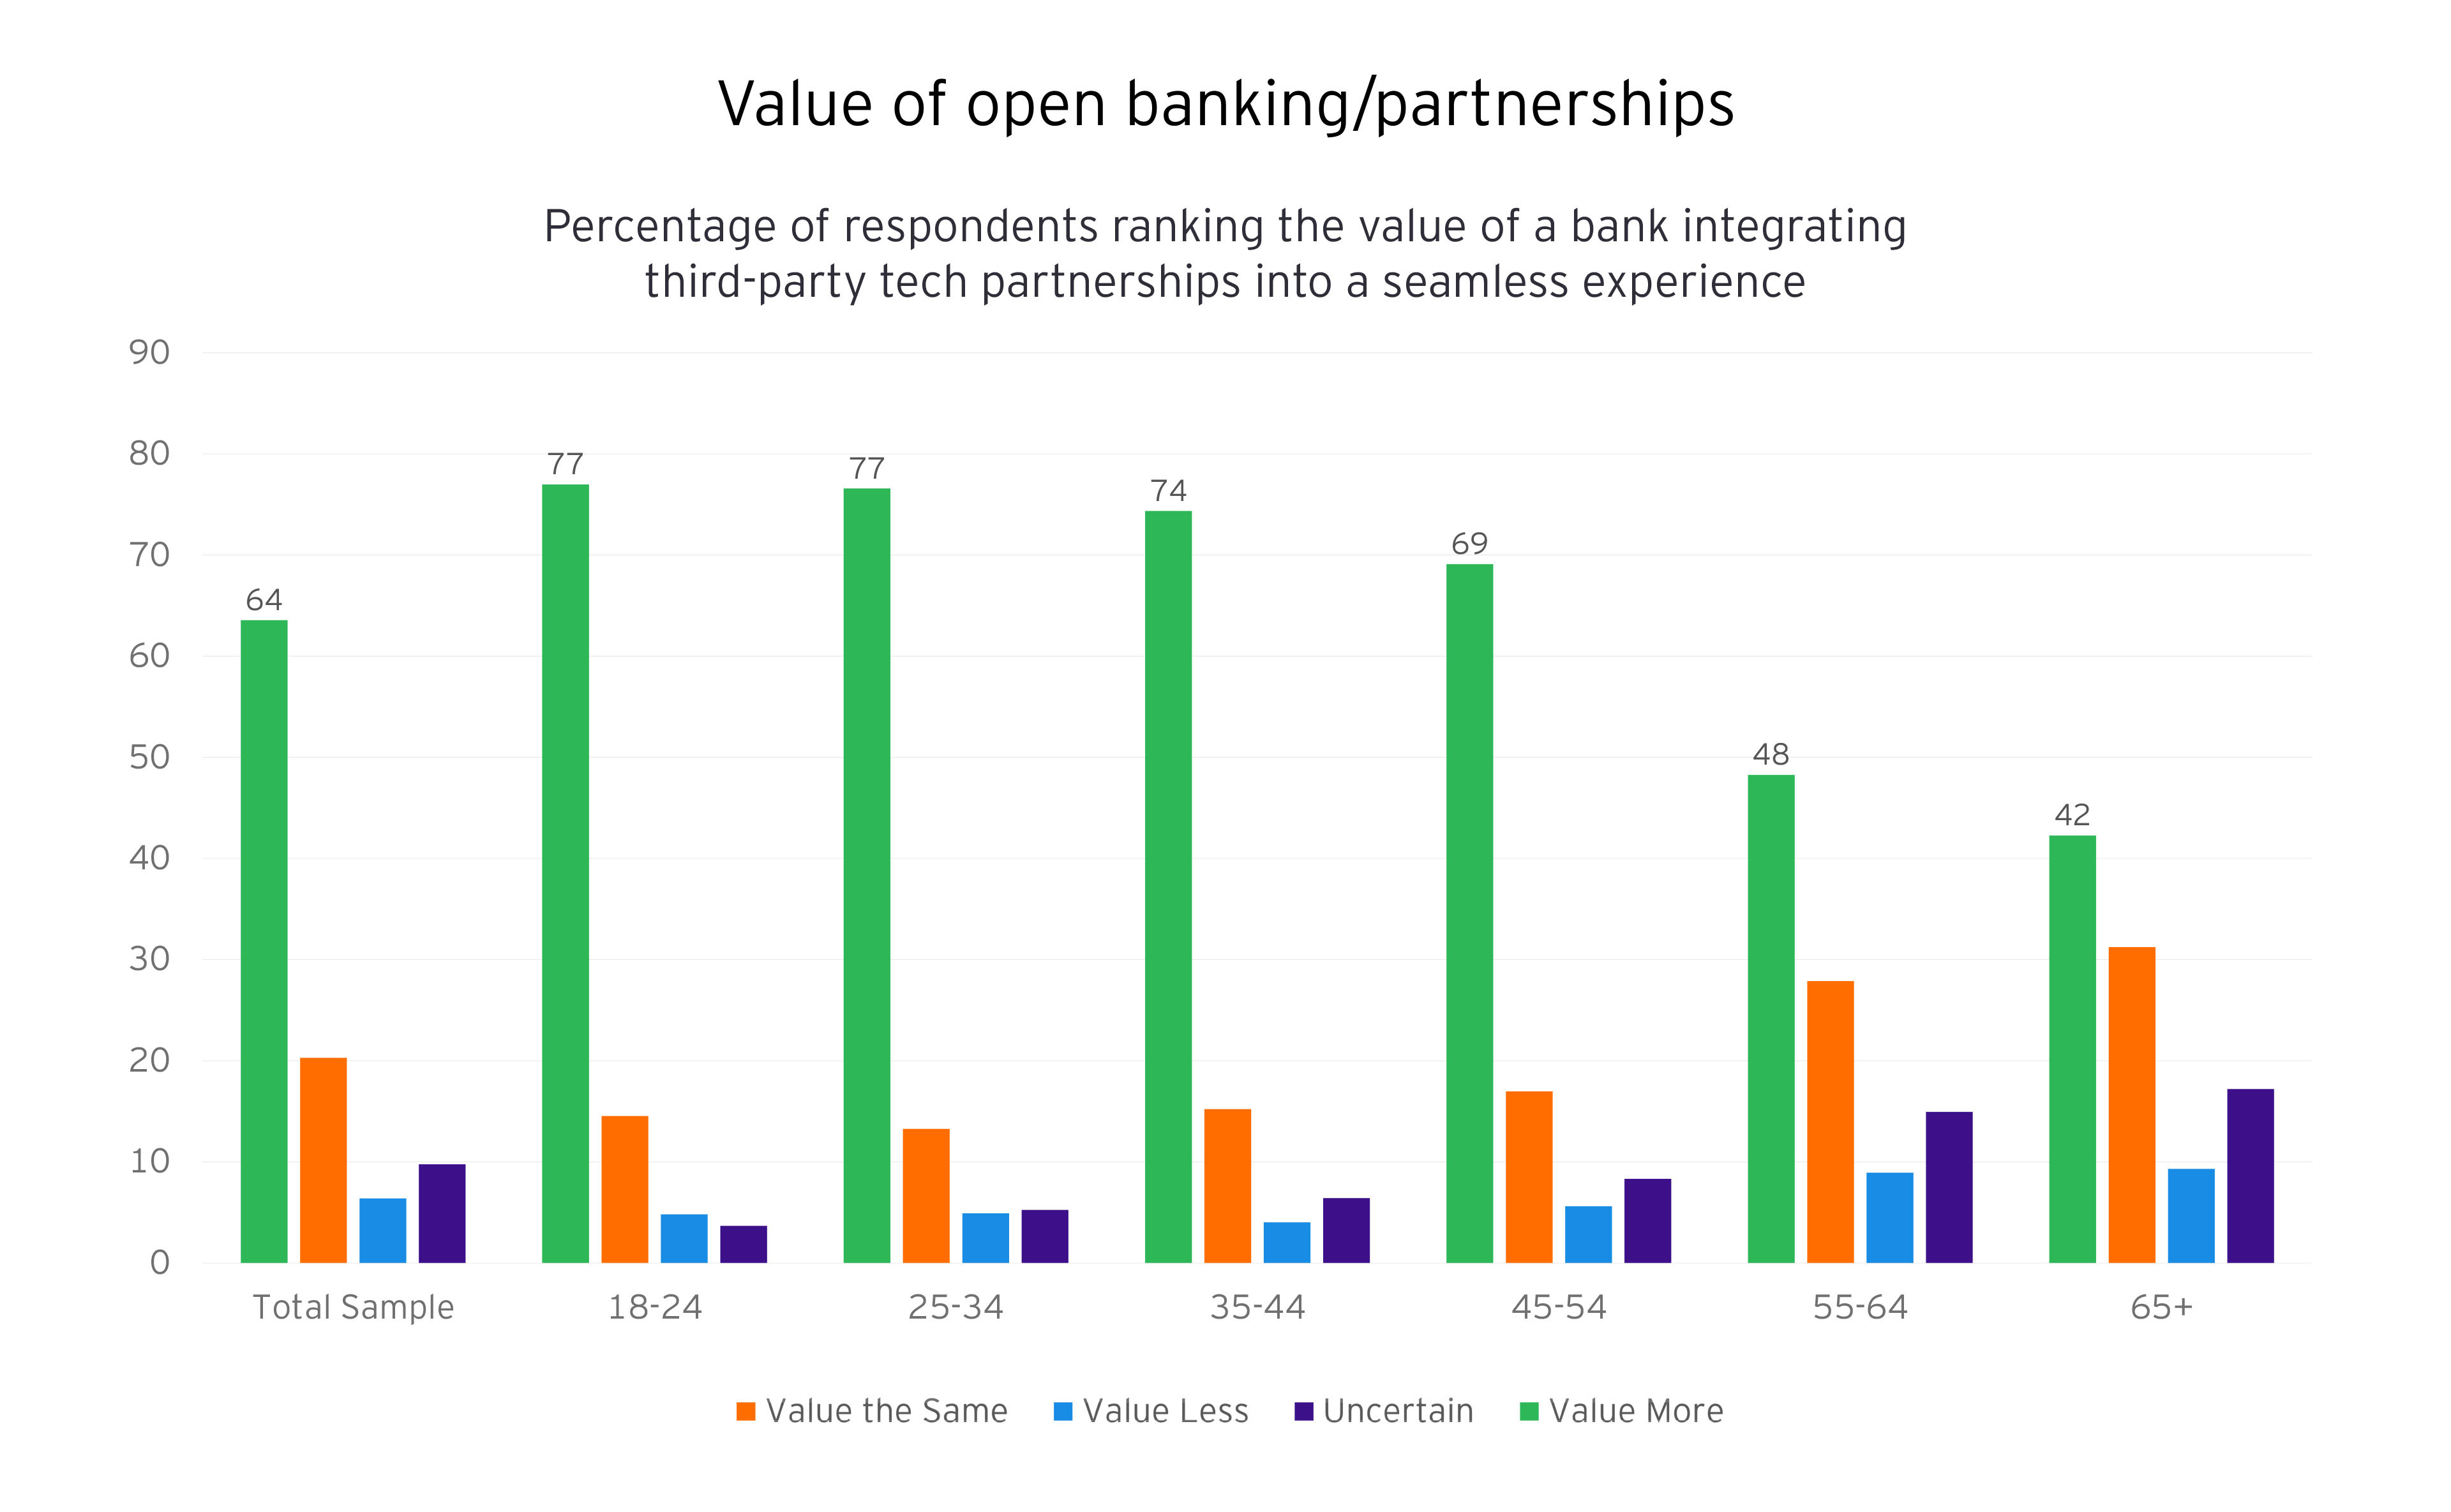 Bar chart of value of open banking/partnerships